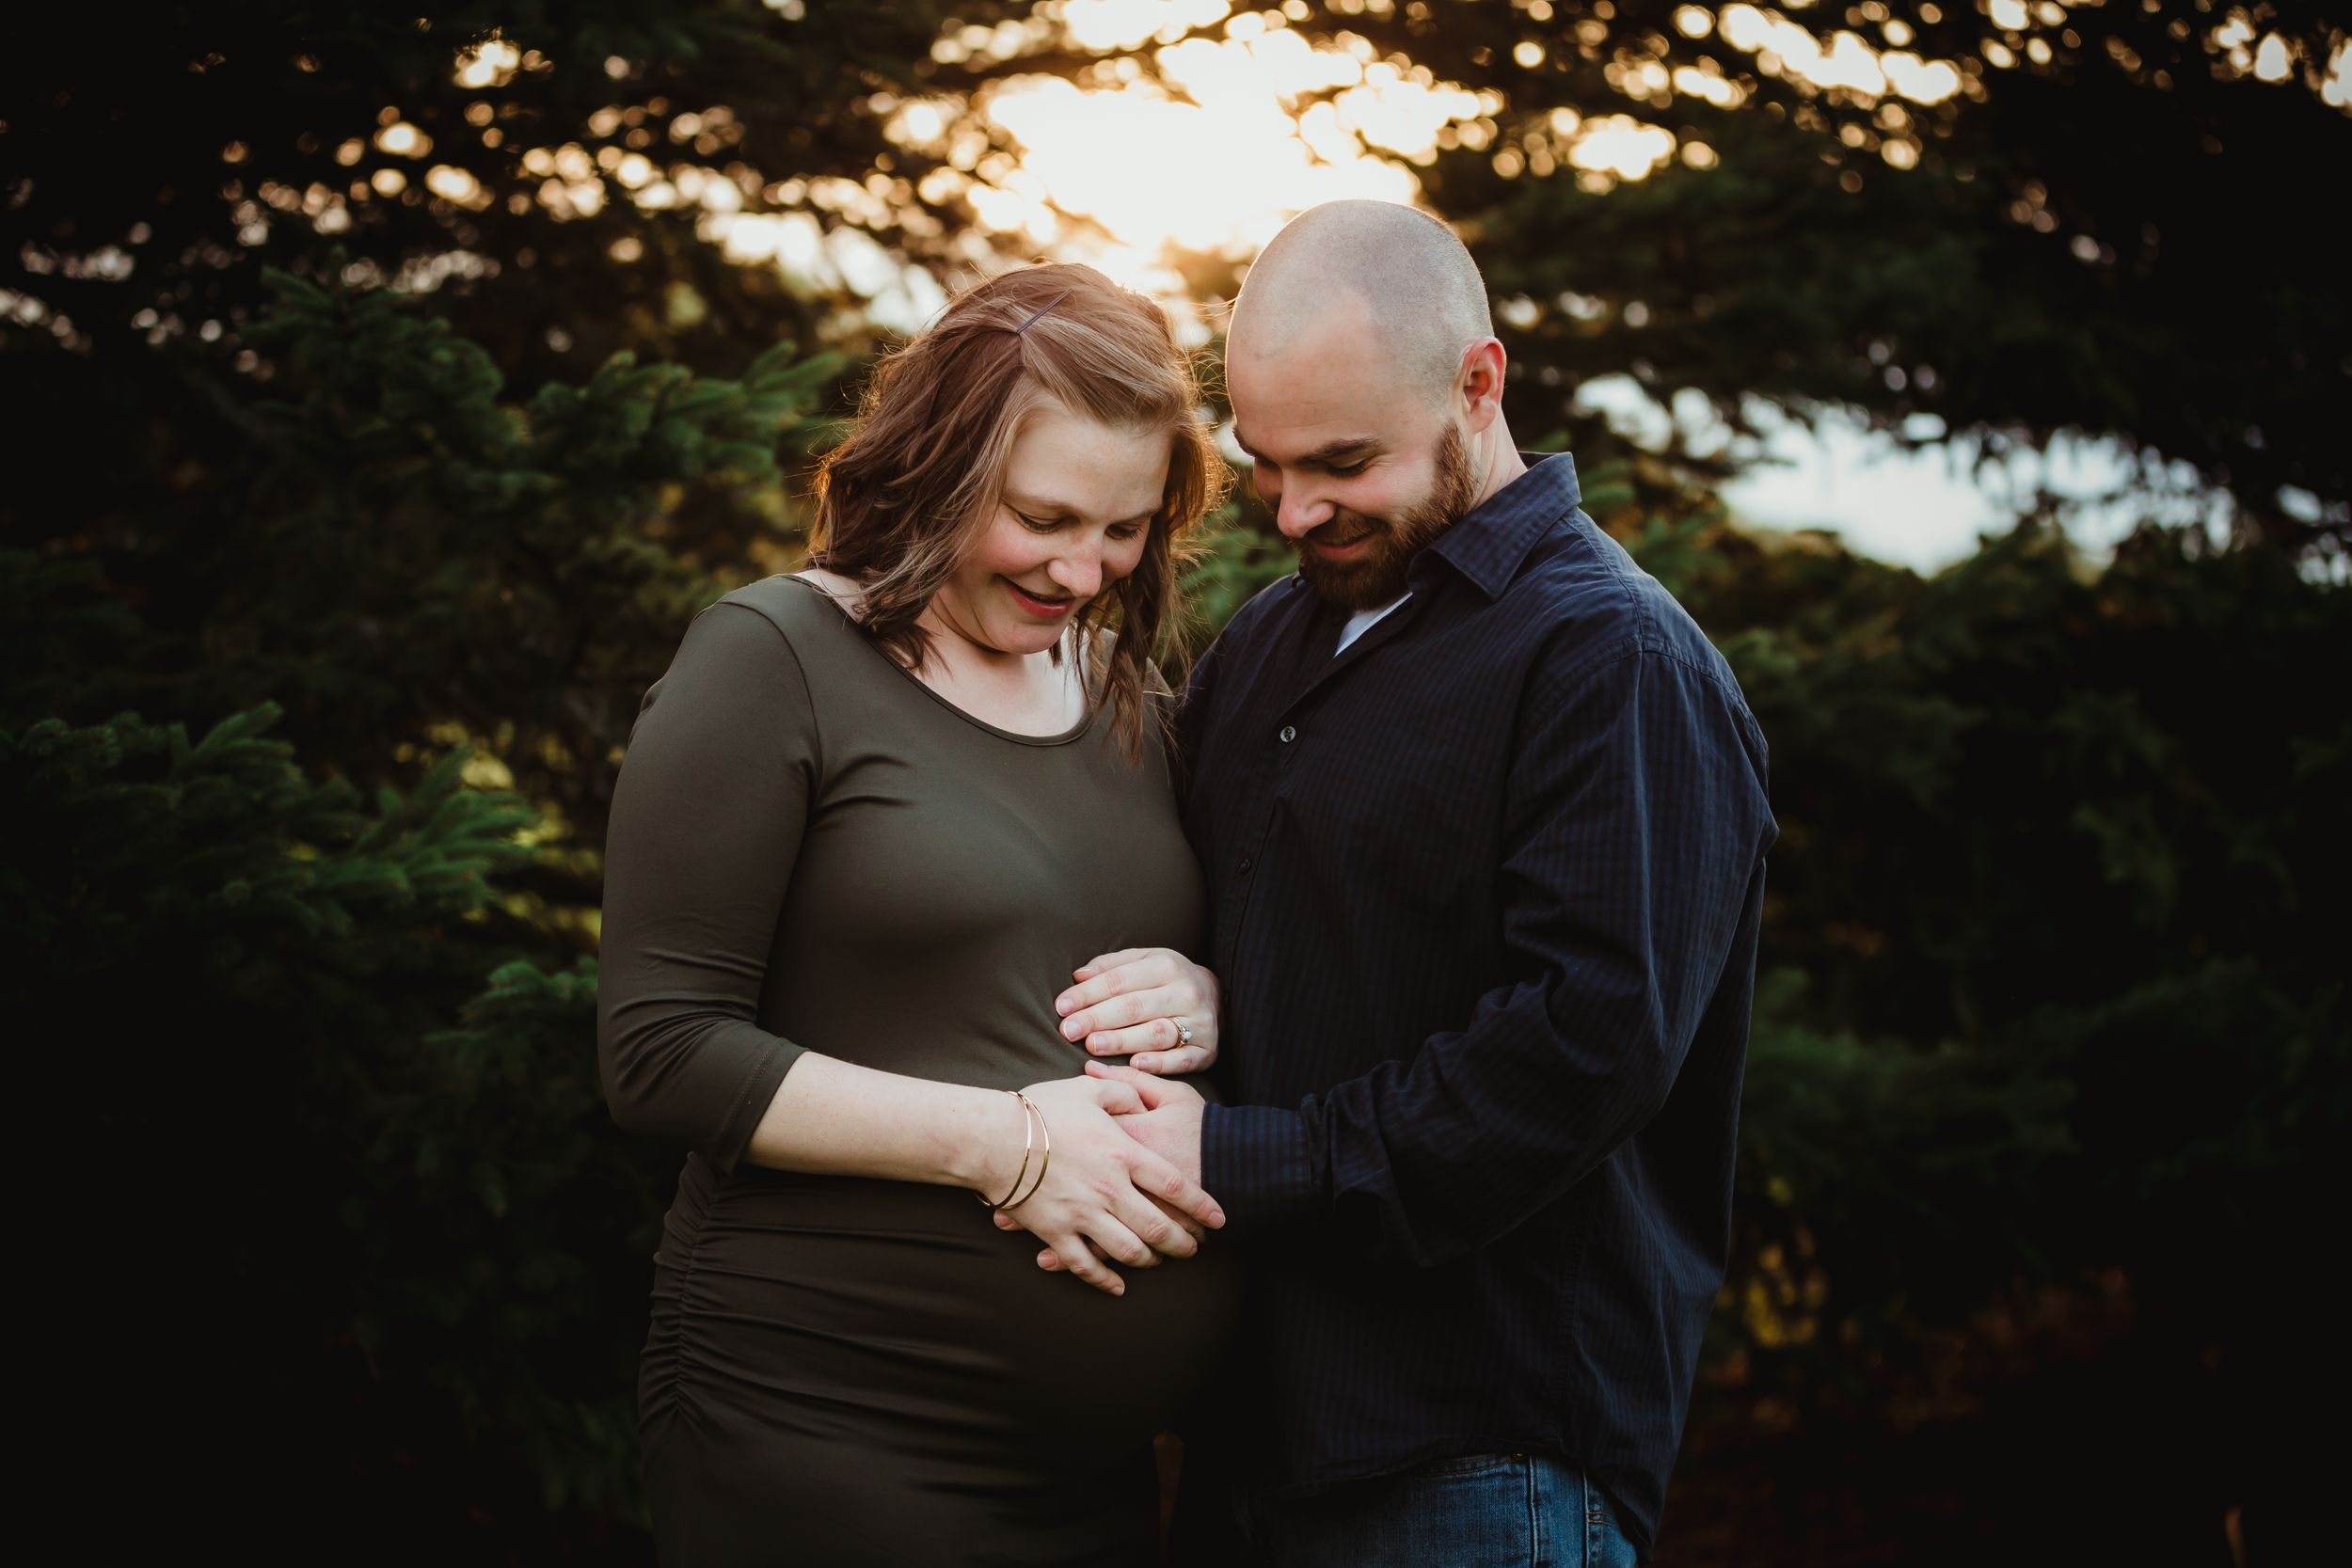 Pregnant woman and husband holding her belly, looking down at it, standing in front of pine trees.